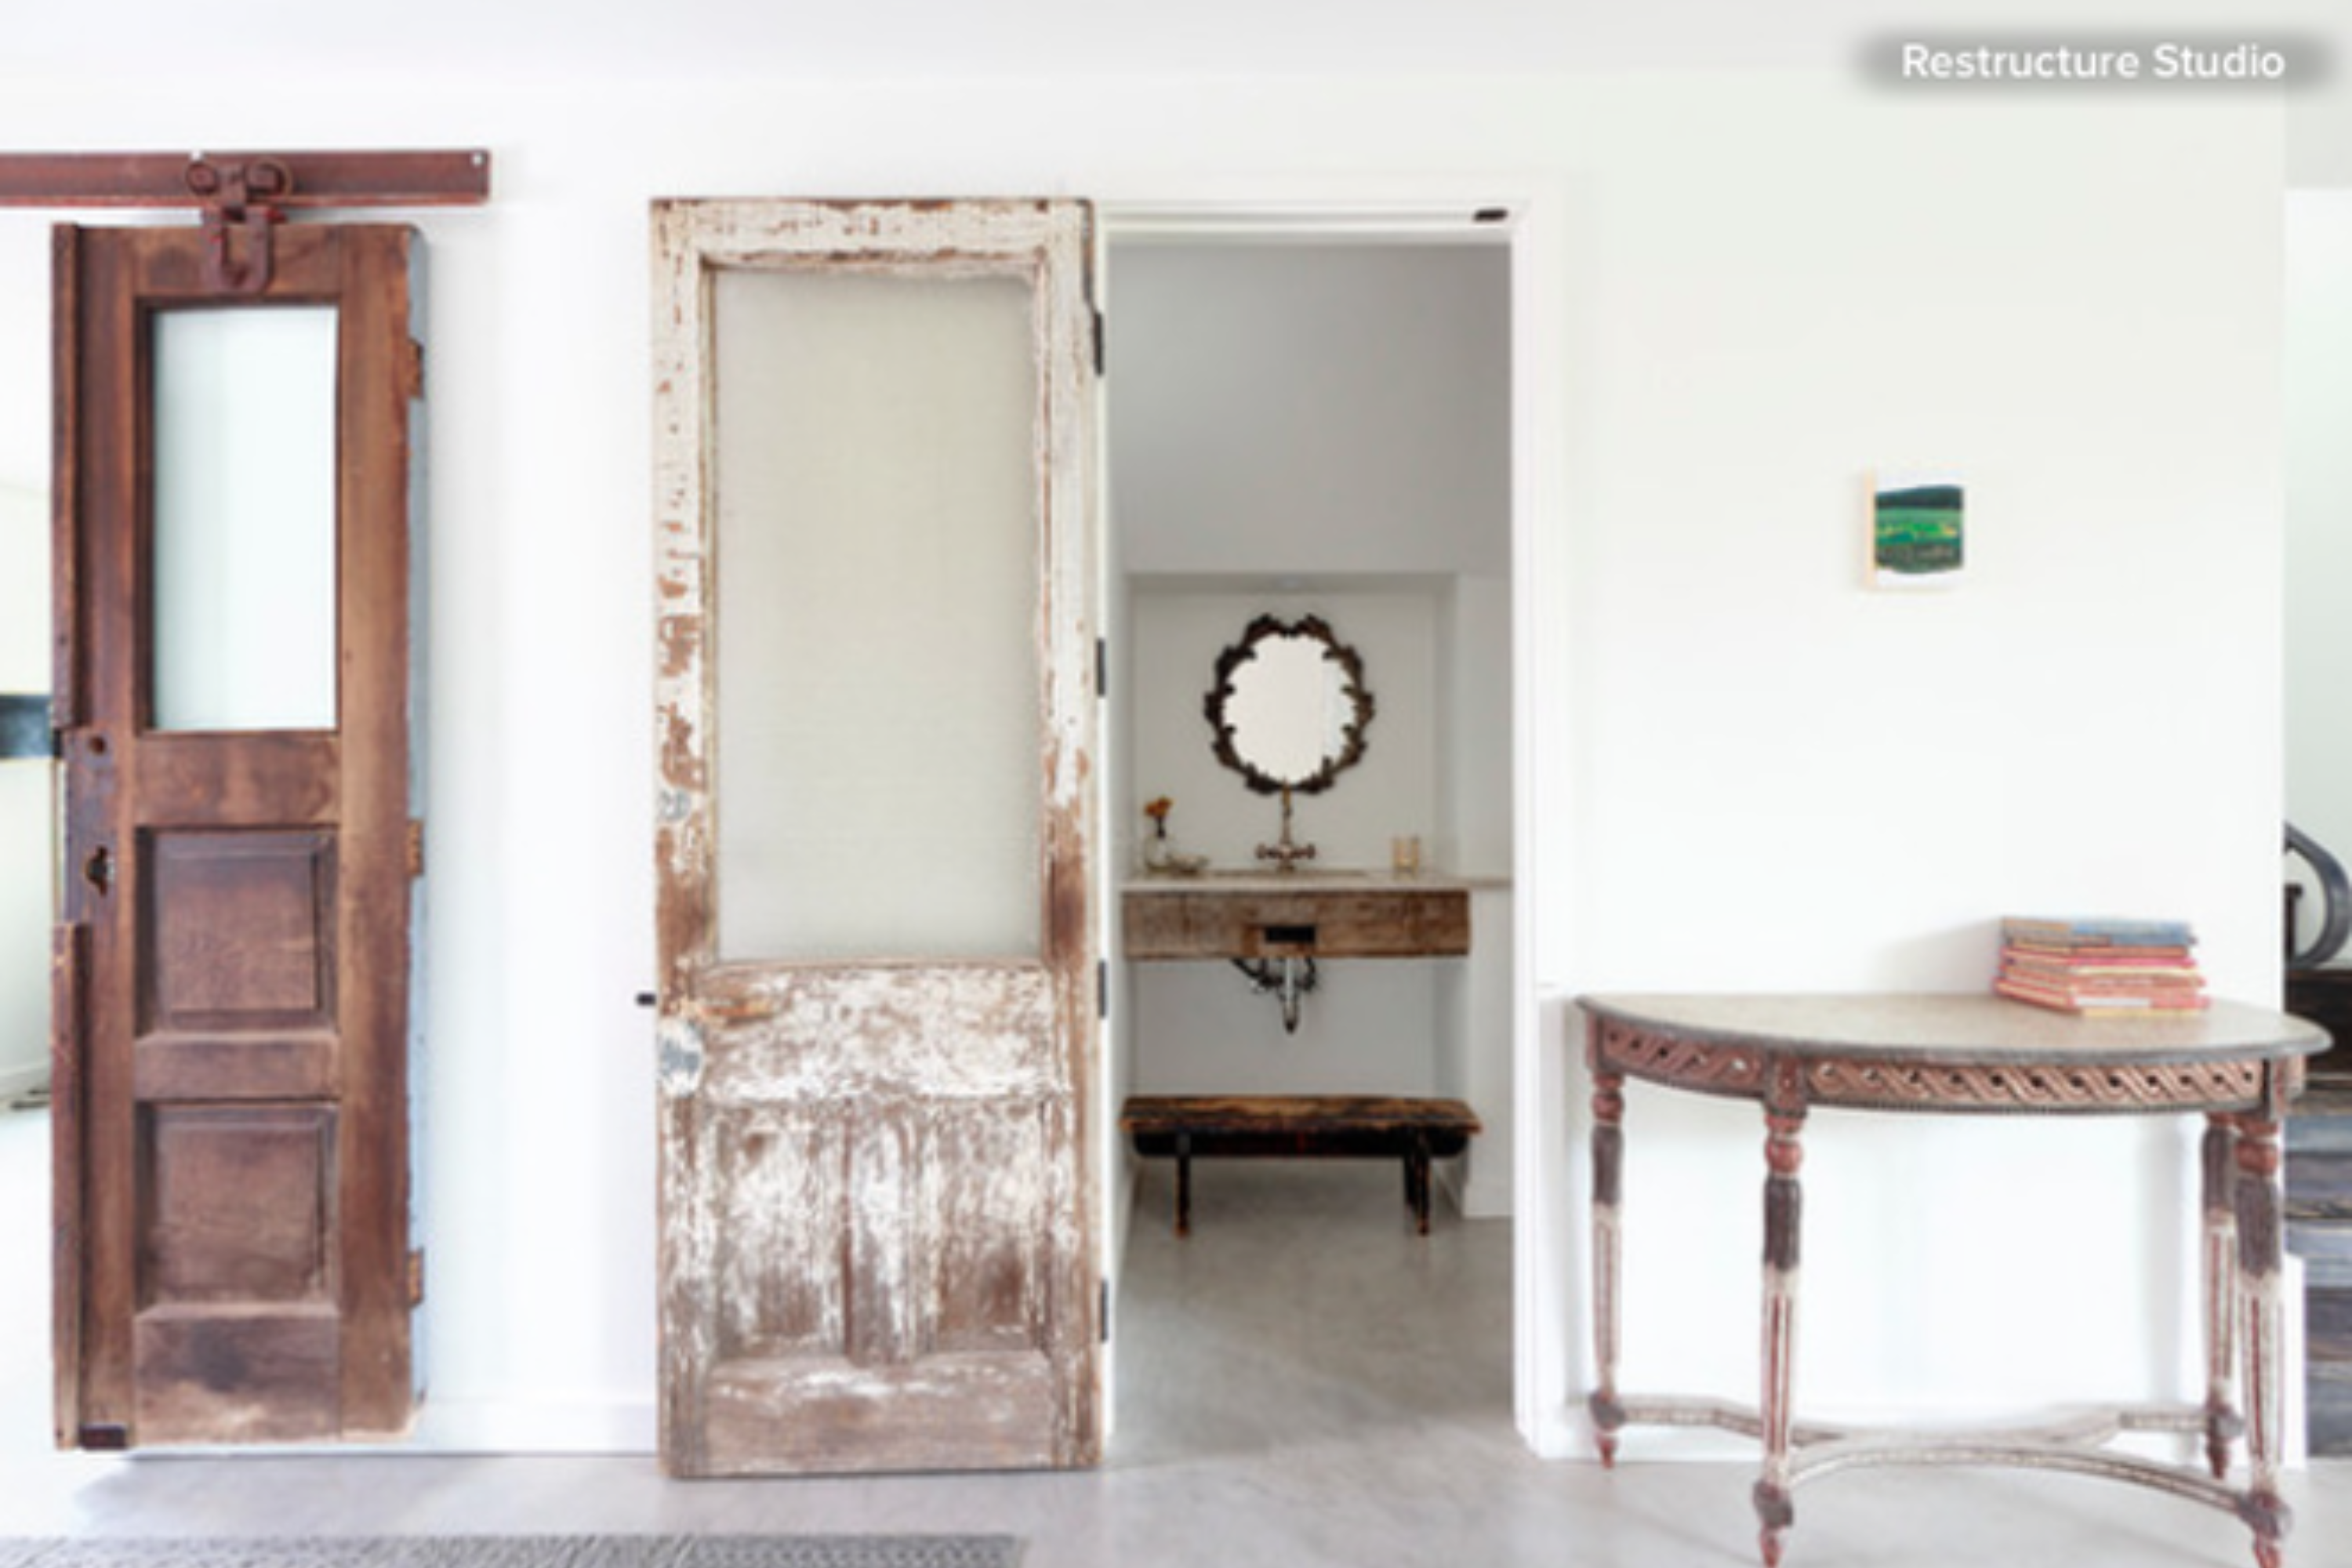 Ask an Expert: The Secrets of Successful Second-hand Furniture Hunting